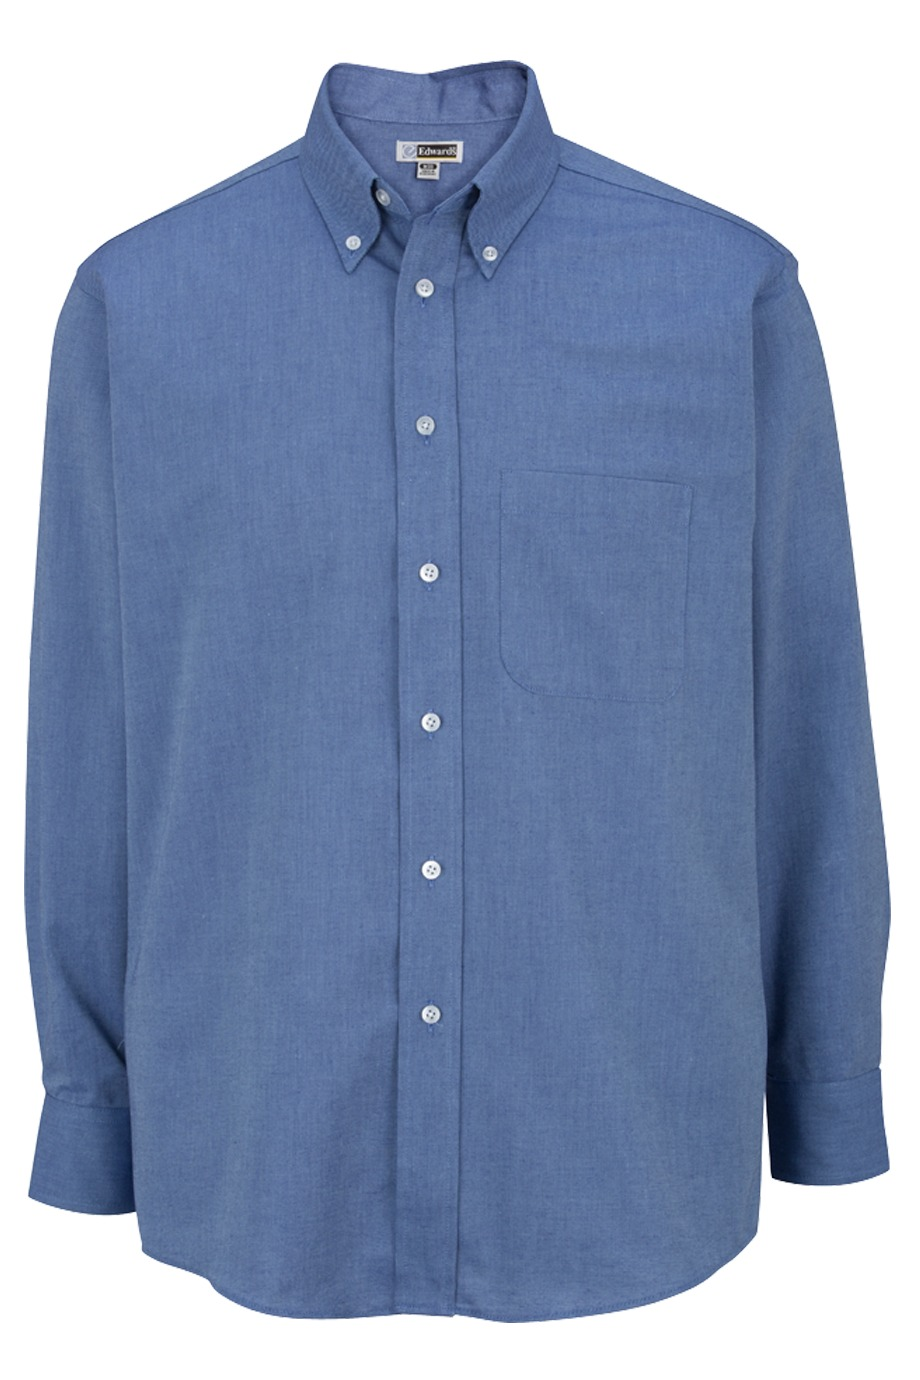 Edwards Garment 1077 - Men's Easy Care Long Sleeve Oxford